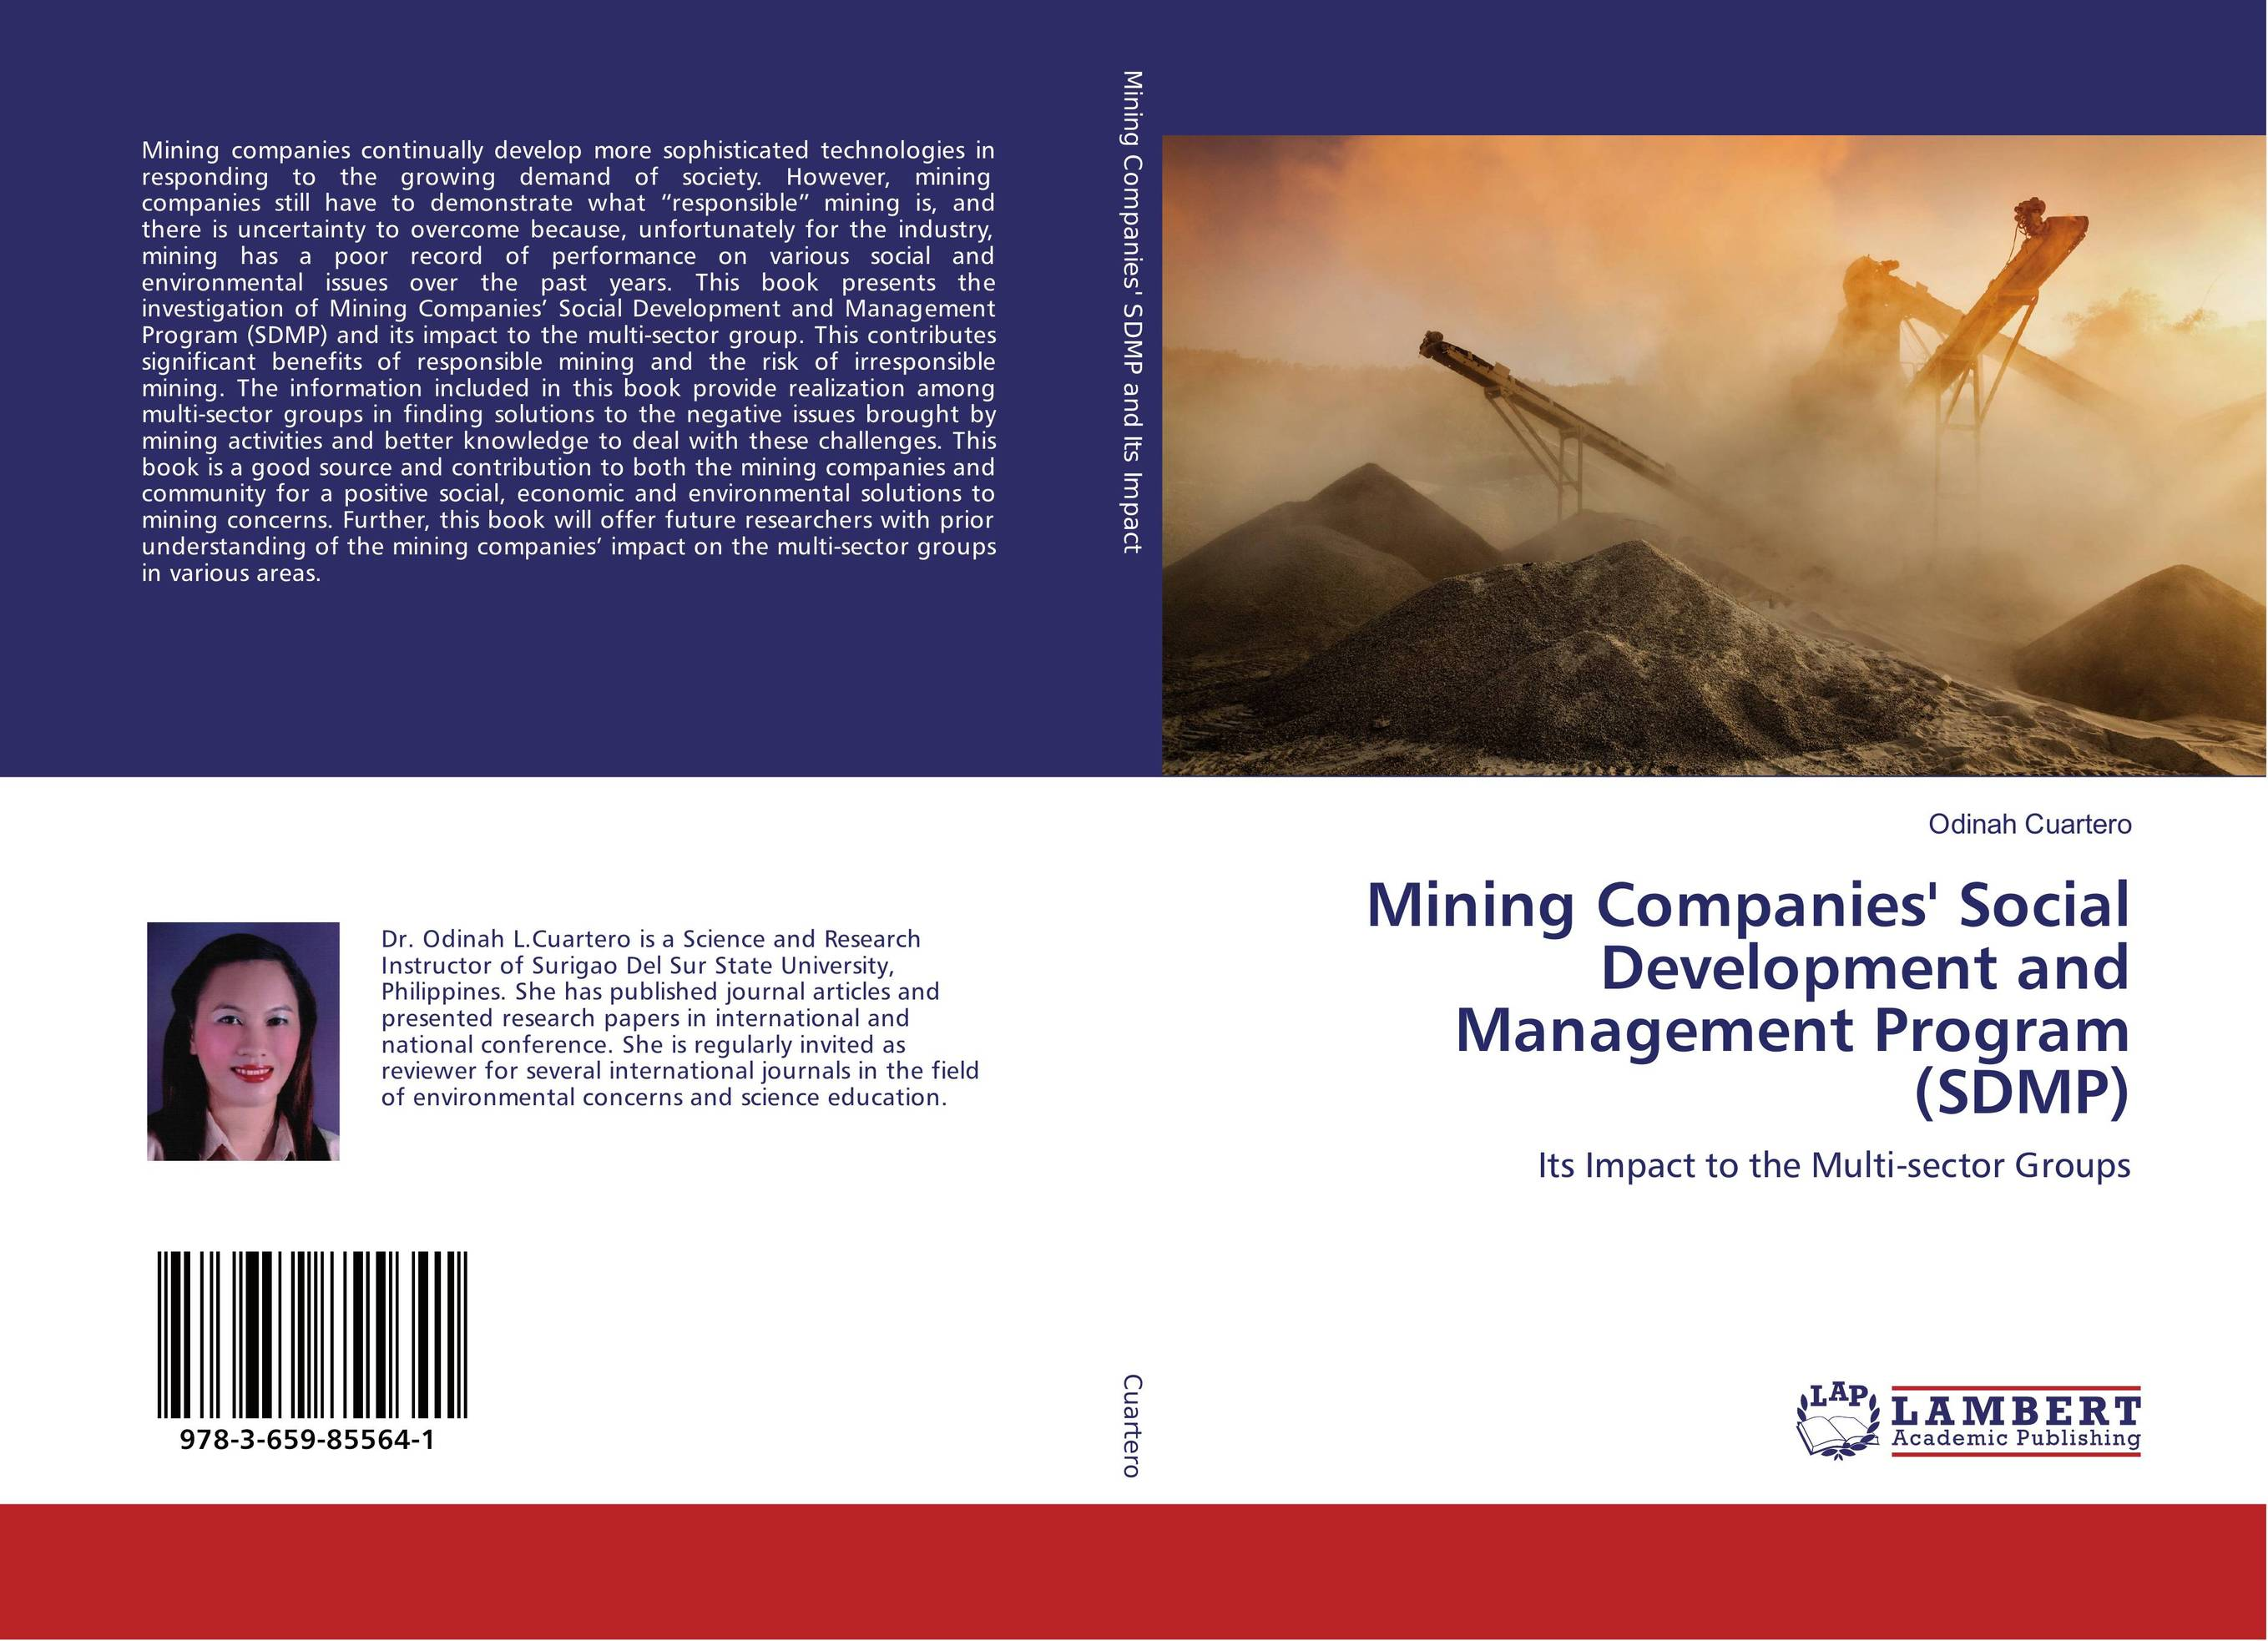 Mining Companies' Social Development and Management Program (SDMP) robert benfari c understanding and changing your management style assessments and tools for self development